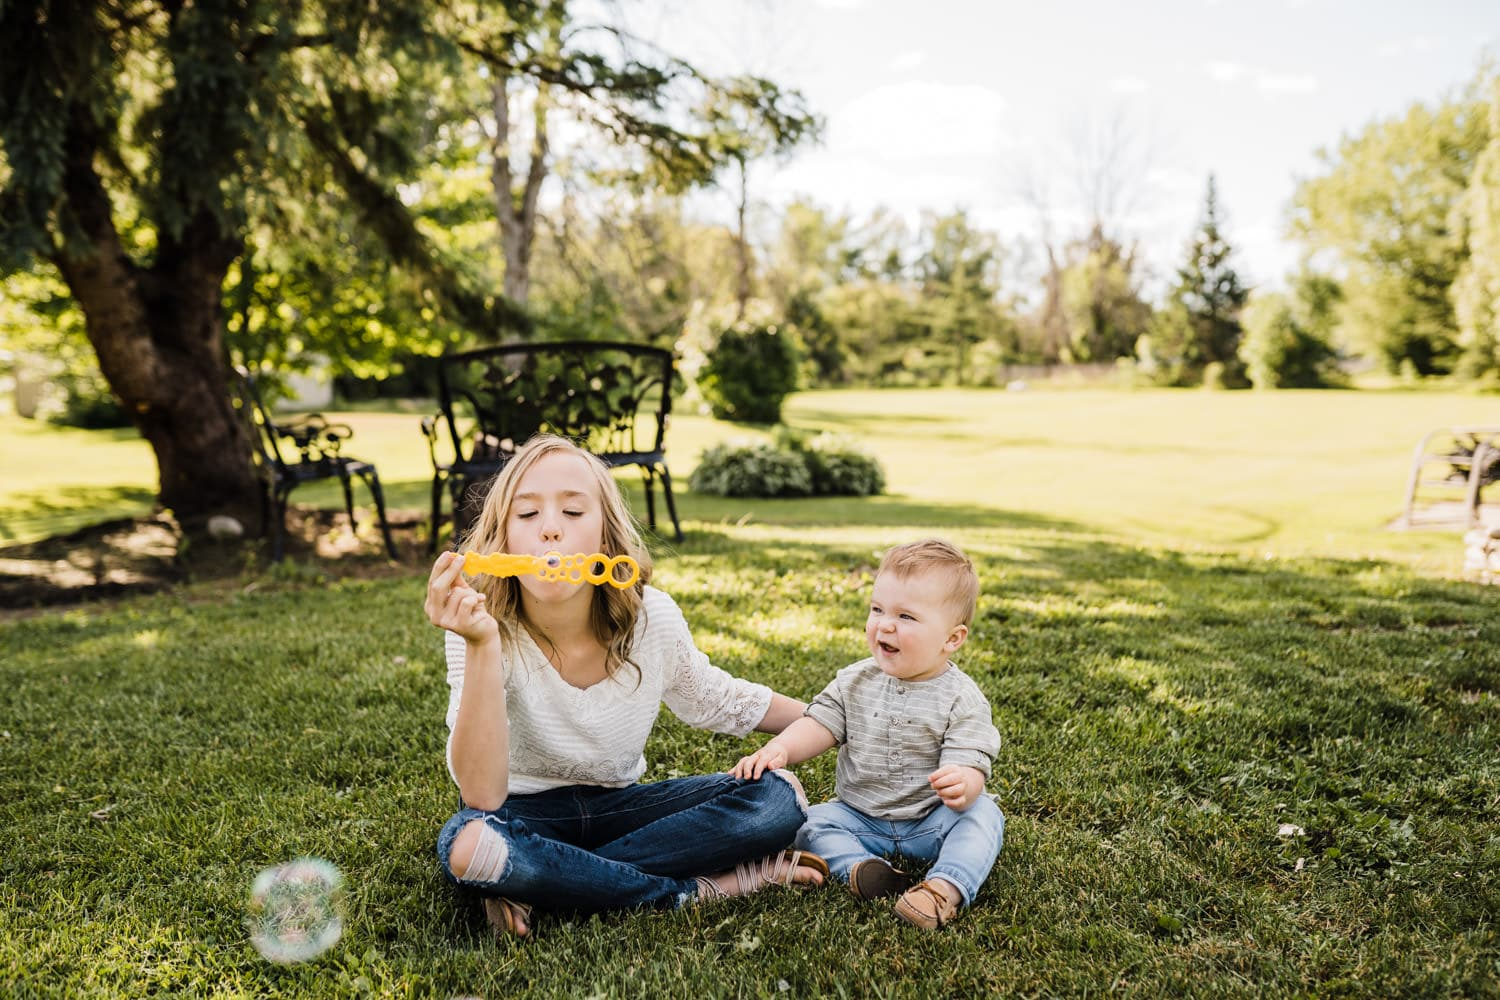 older sister blows bubbles for baby brother - lifestyle family photos ottawa